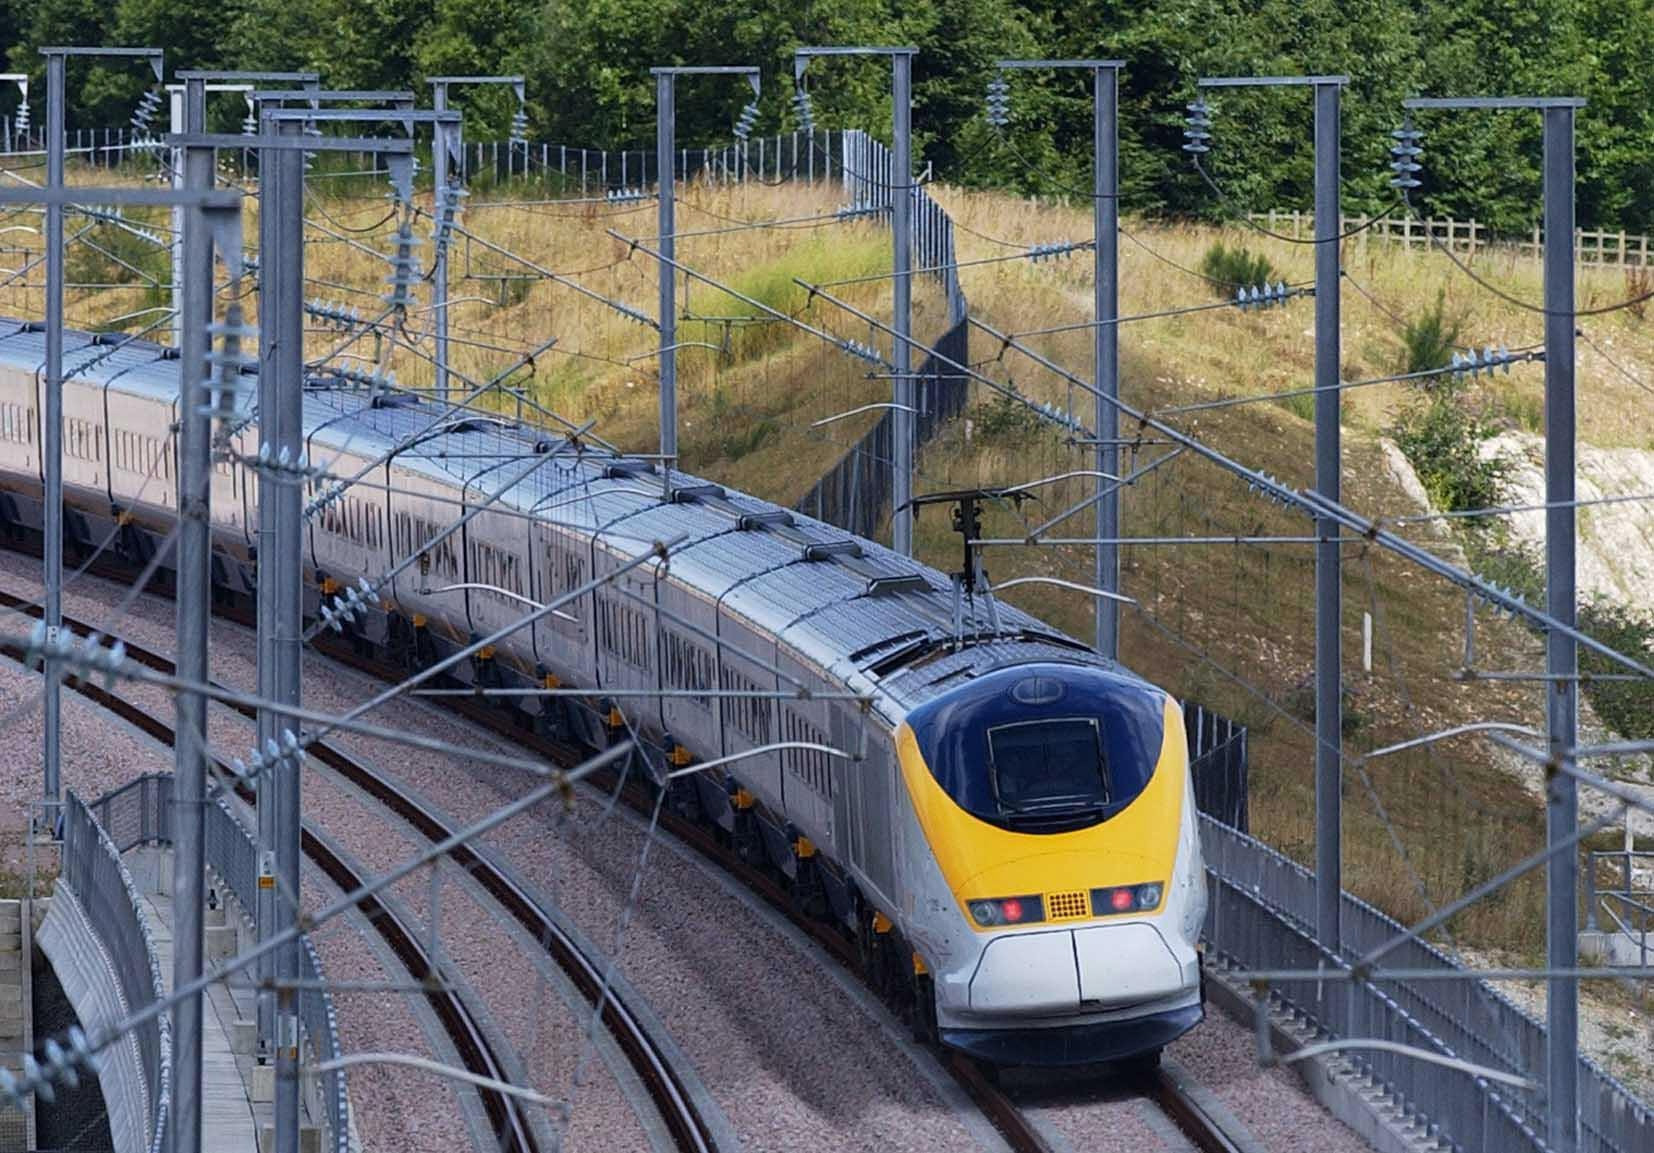 The two-phase rail project is scheduled to link London to the West Midlands in by 2026 and the West Midlands to Manchester and Leeds by 2033